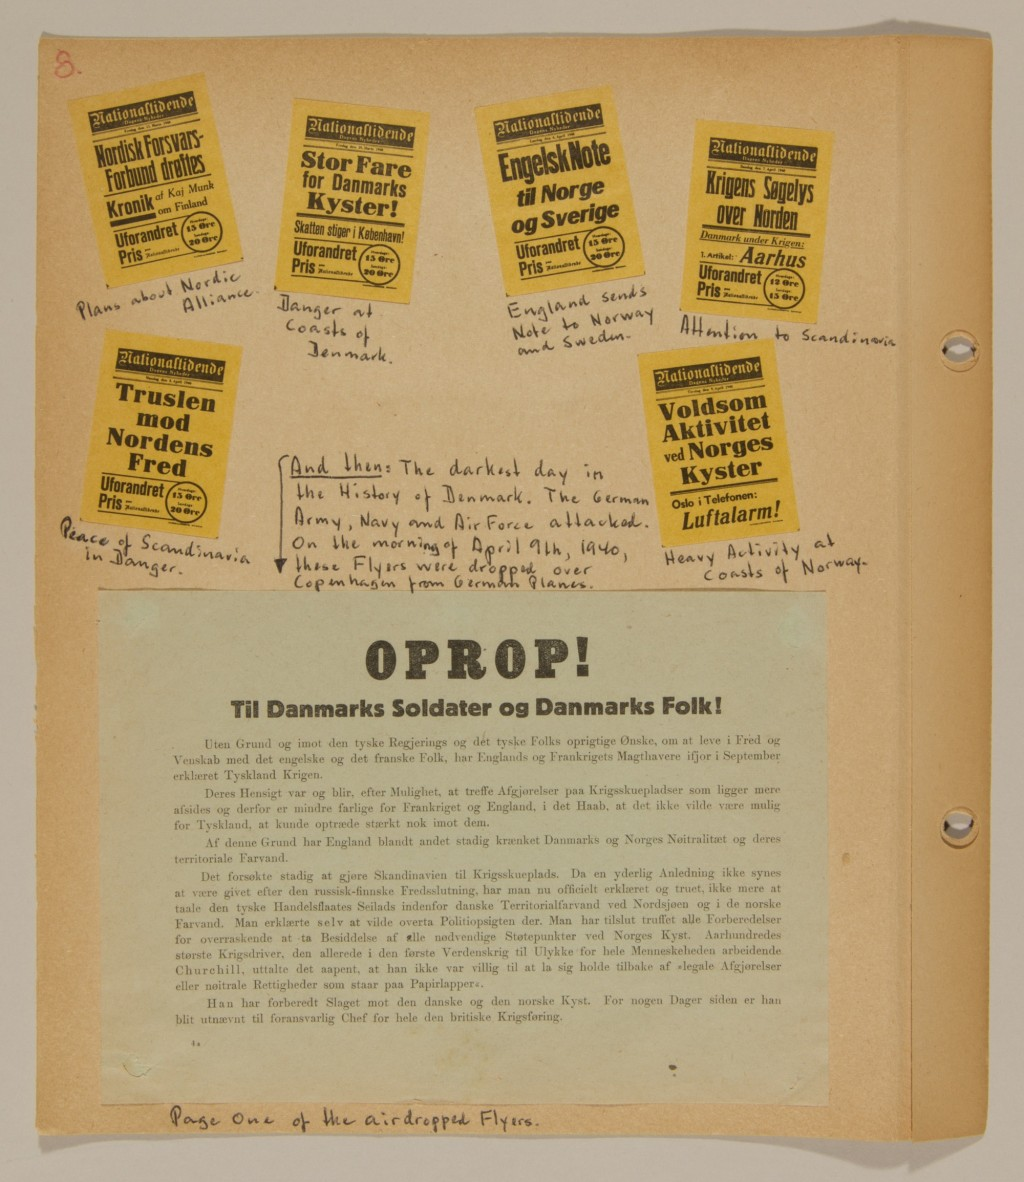 "<p>Page from volume 1 of a set of scrapbooks compiled by Bjorn Sibbern, a Danish policeman and resistance member, documenting the German occupation of <a href=""/narrative/4236"">Denmark</a>. Bjorn's wife Tove was also active in the Danish resistance. After World War II, Bjorn and Tove moved to Canada and later settled in California, where Bjorn compiled five scrapbooks dedicated to the Sibbern's daughter, Lisa. The books are fully annotated in English and contain photographs, documents and three-dimensional artifacts documenting all aspects of the German occupation of Denmark. This page contains a flyer air-dropped from a German airplane.</p>"